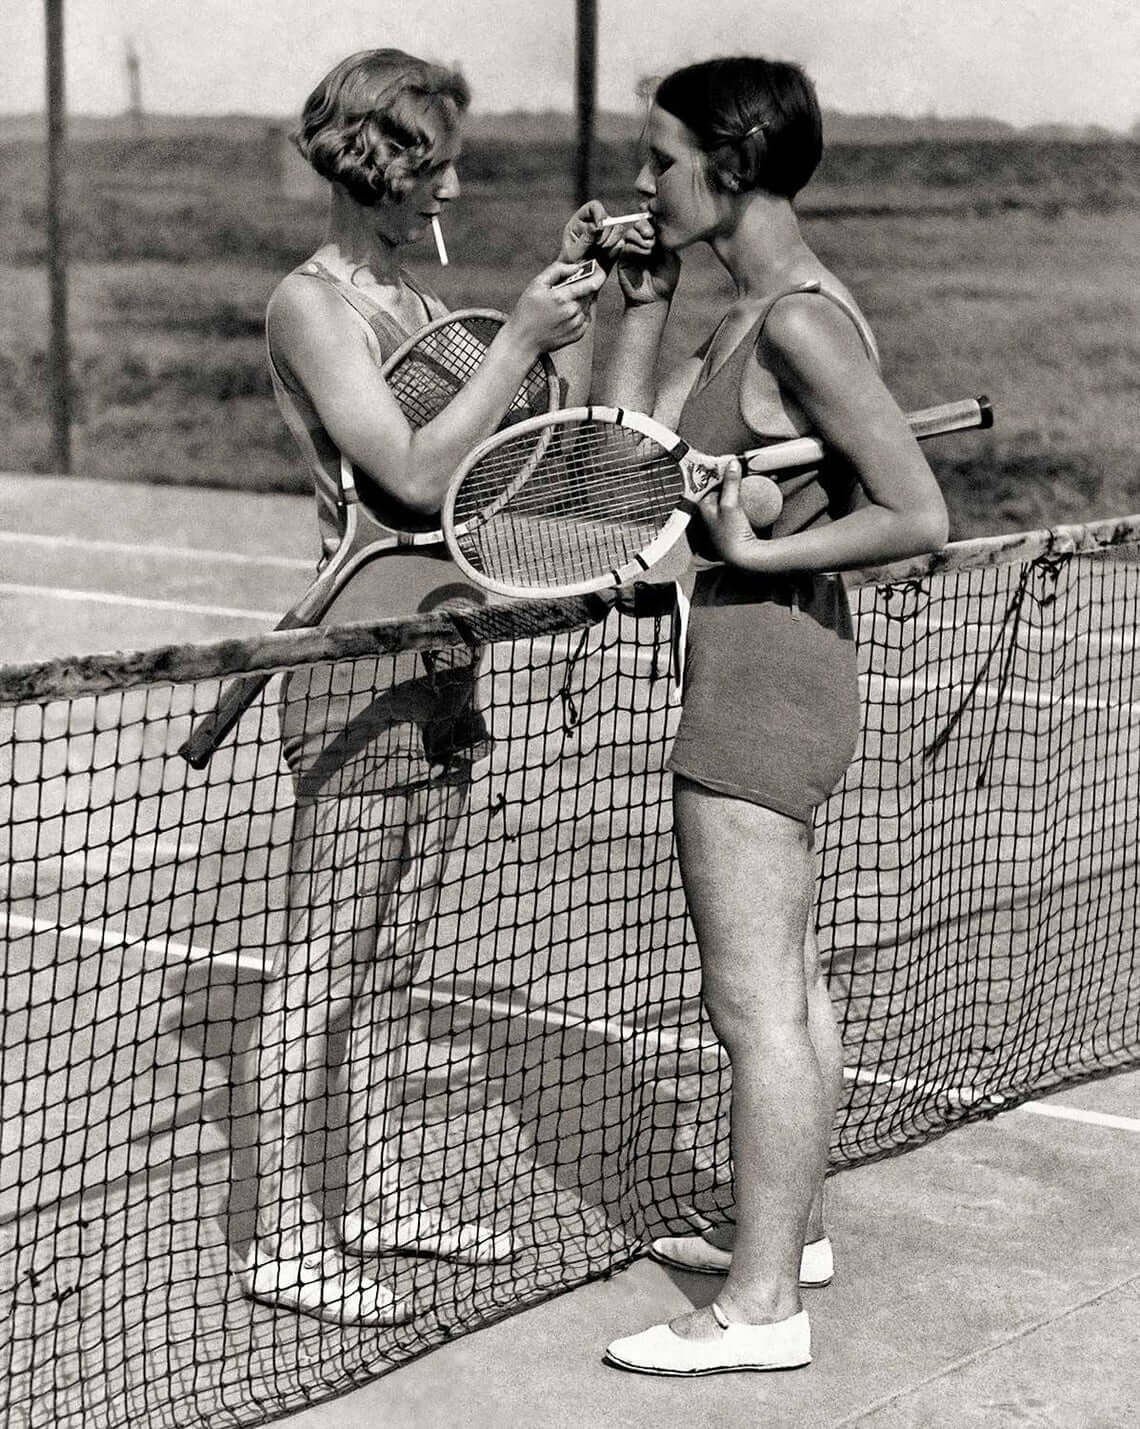 1930s Photograph of Women Smoking & Playing Tennis